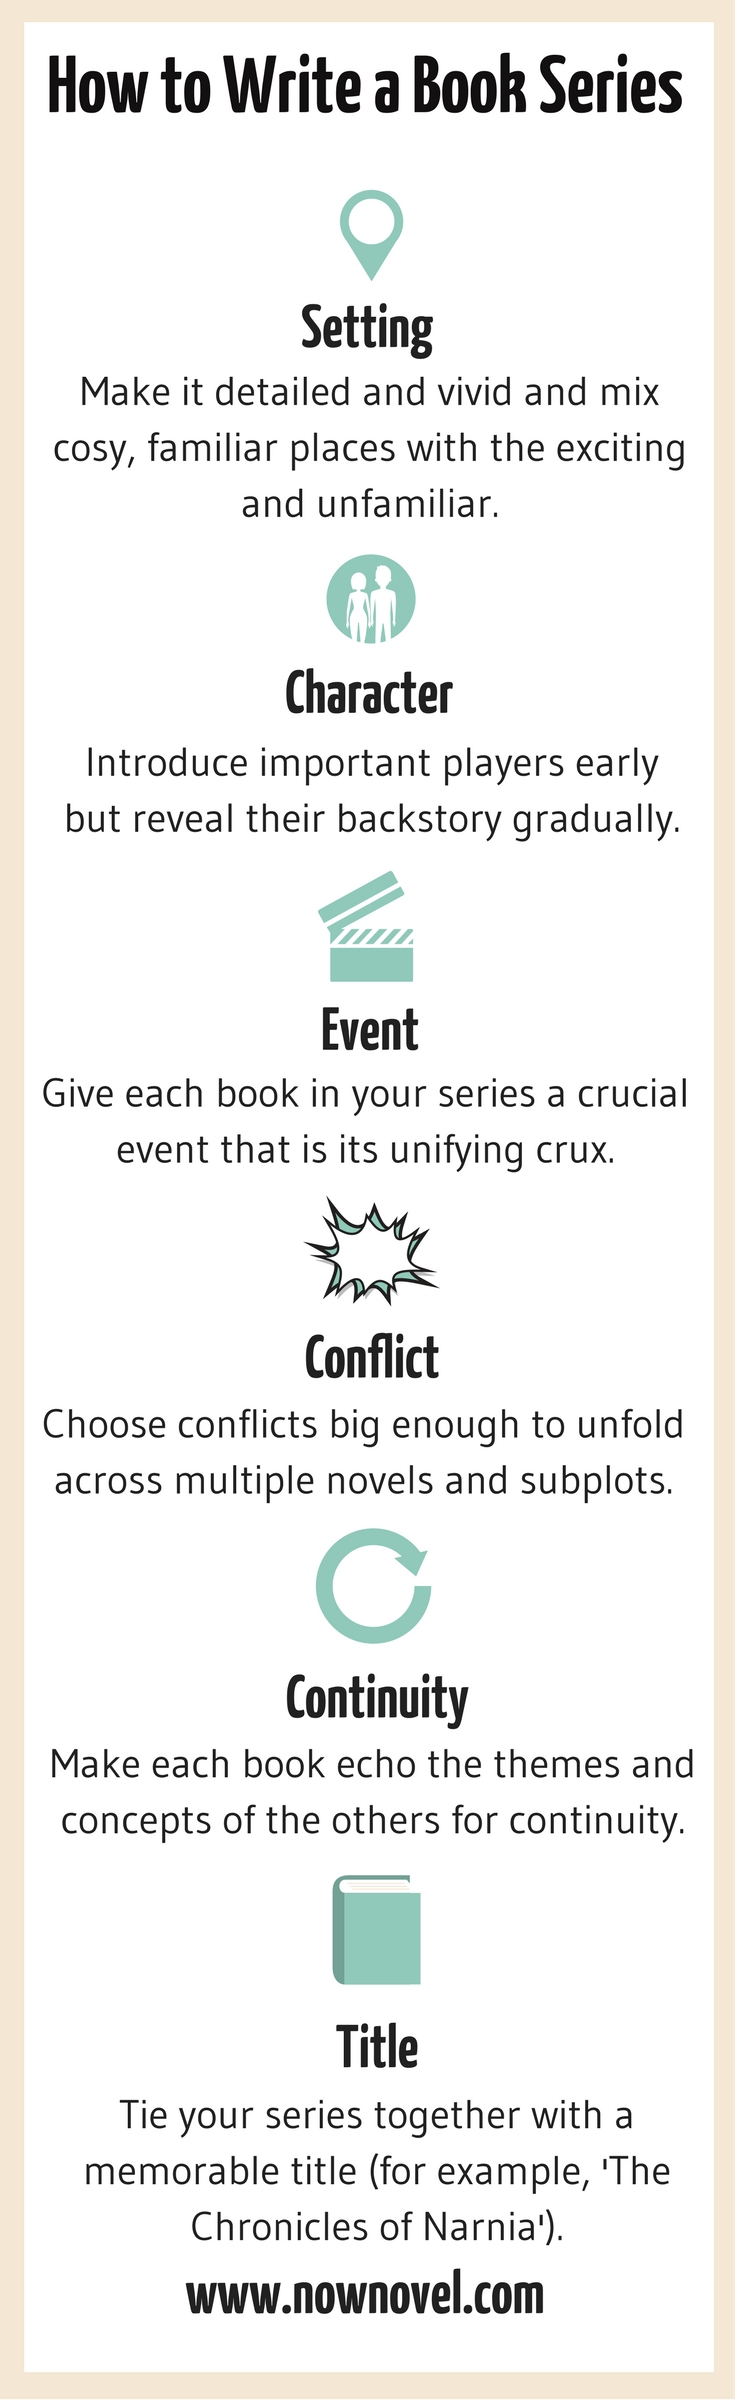 10 Lovely Good Book Ideas To Write how to write a book series 10 tips for success key ingredient 1 2021